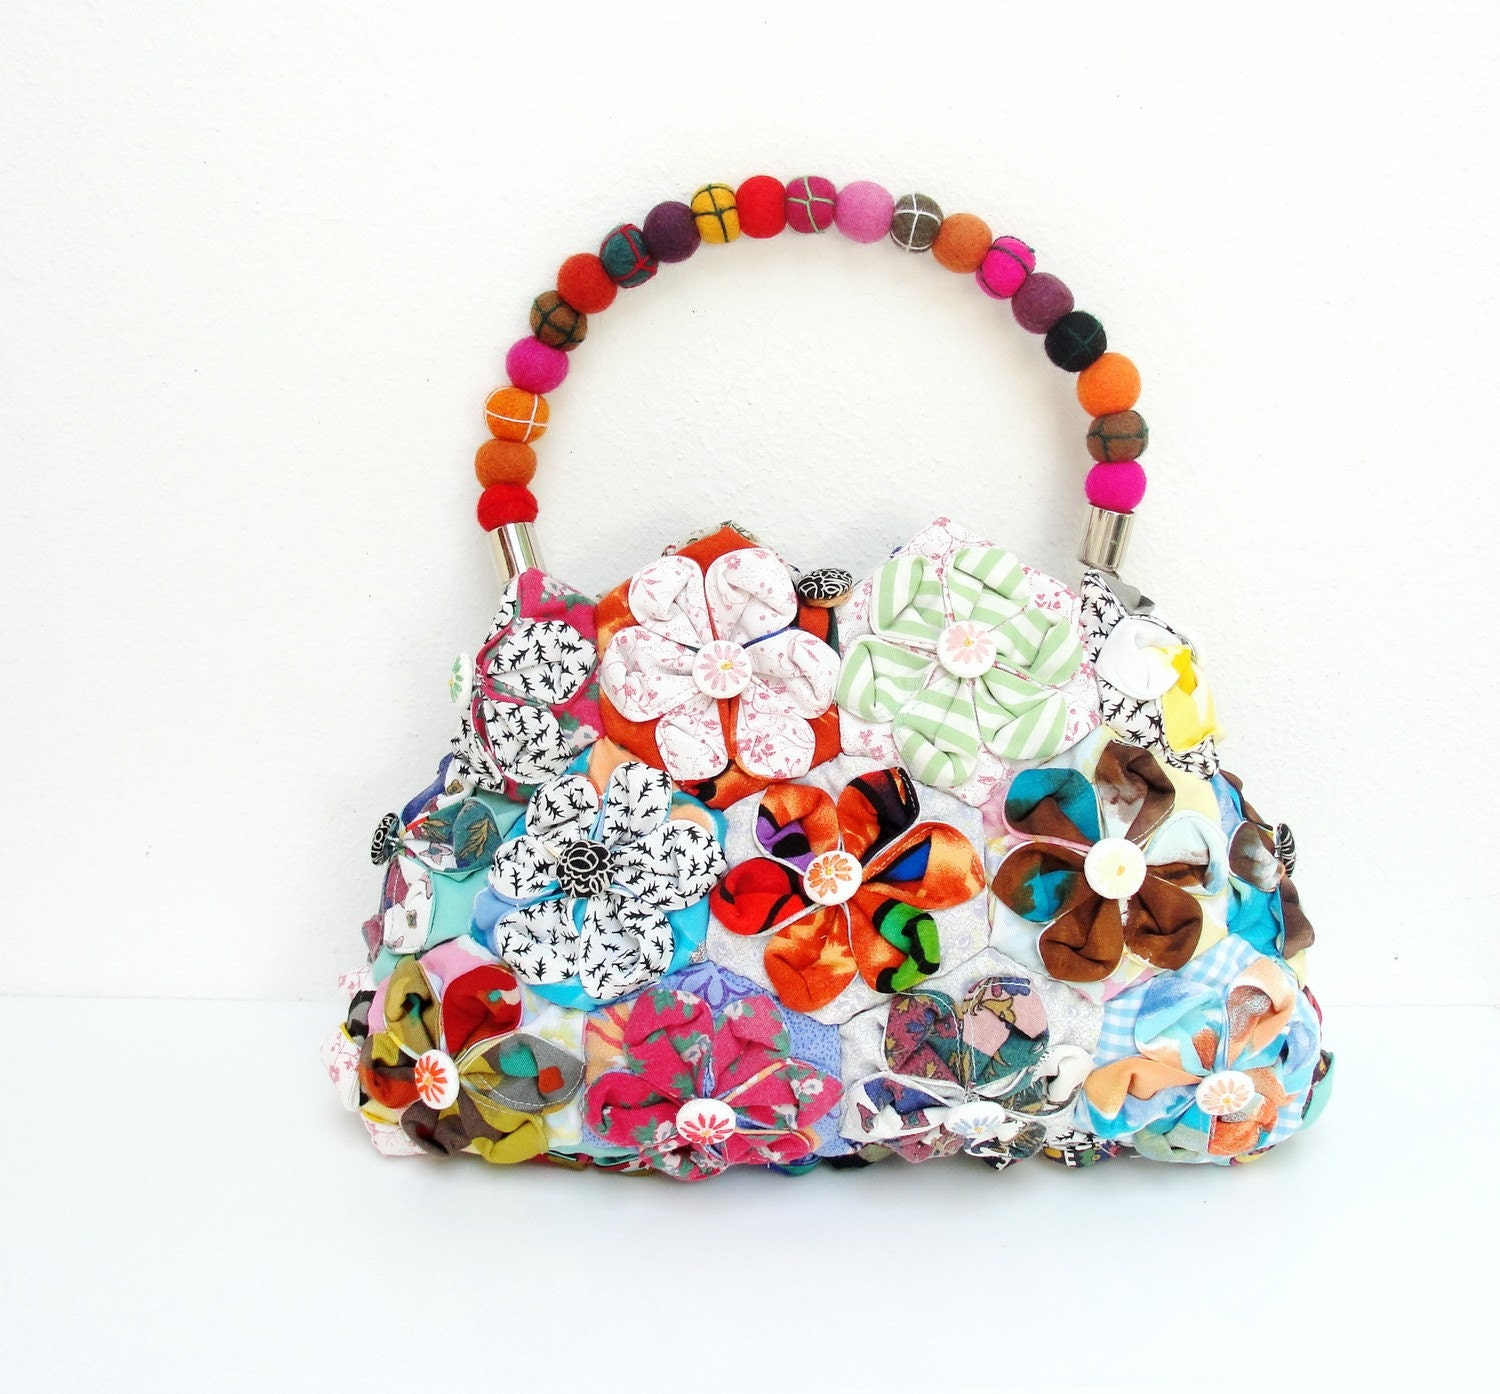 Orinuno Bag - Handfolded and Sewn Flowers